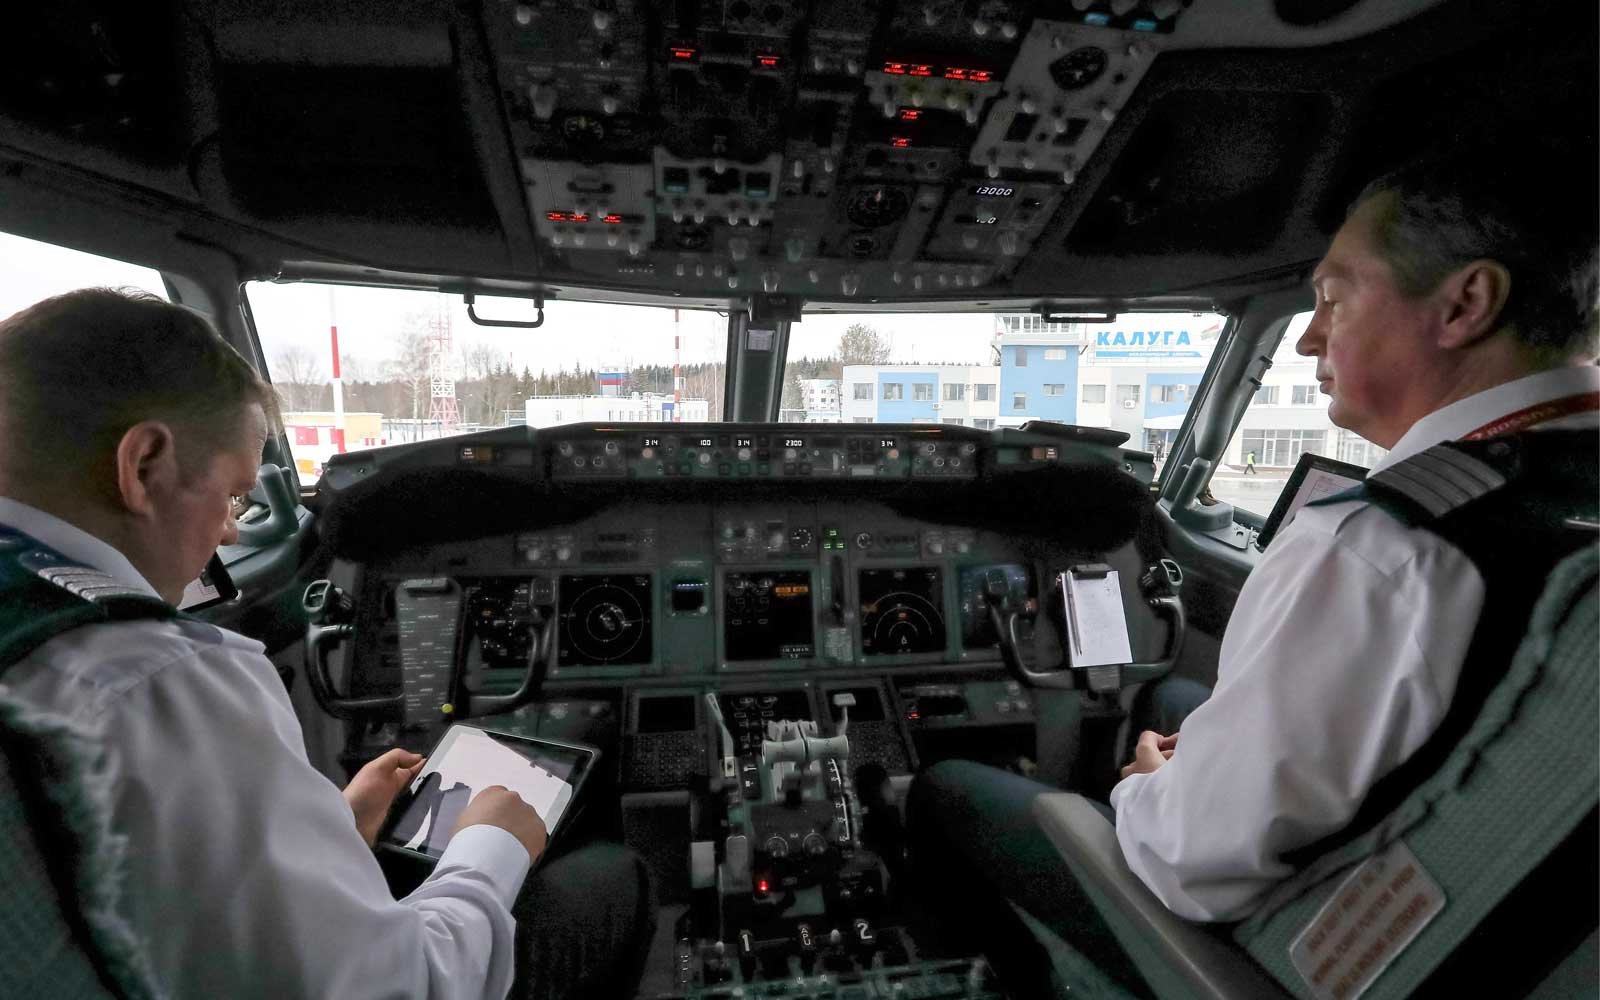 The cockpit of a new Boeing 737-800